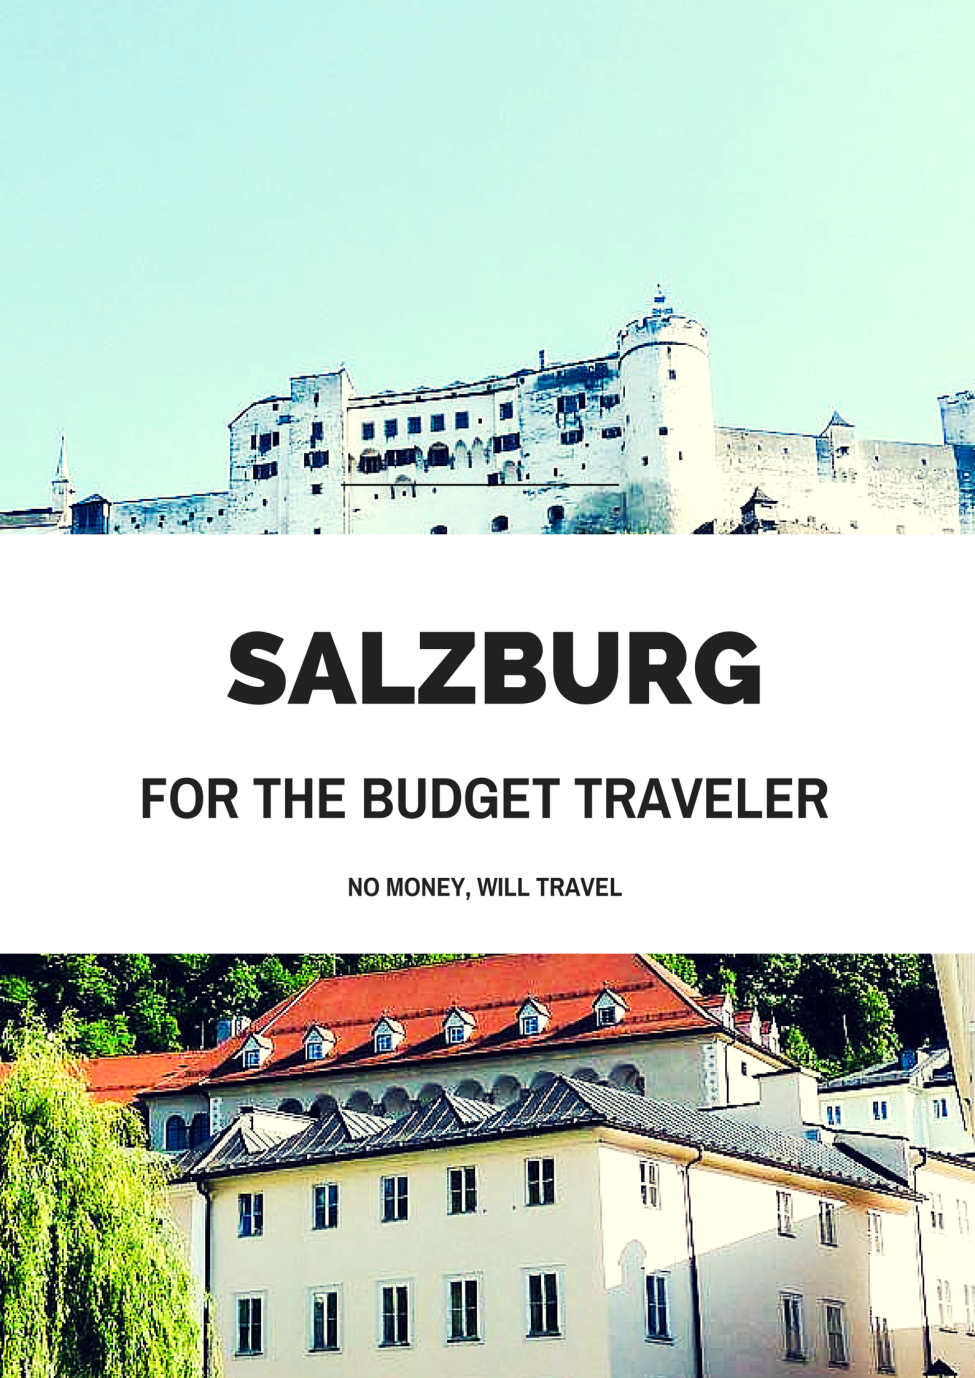 Salzburg for the Budget Traveler